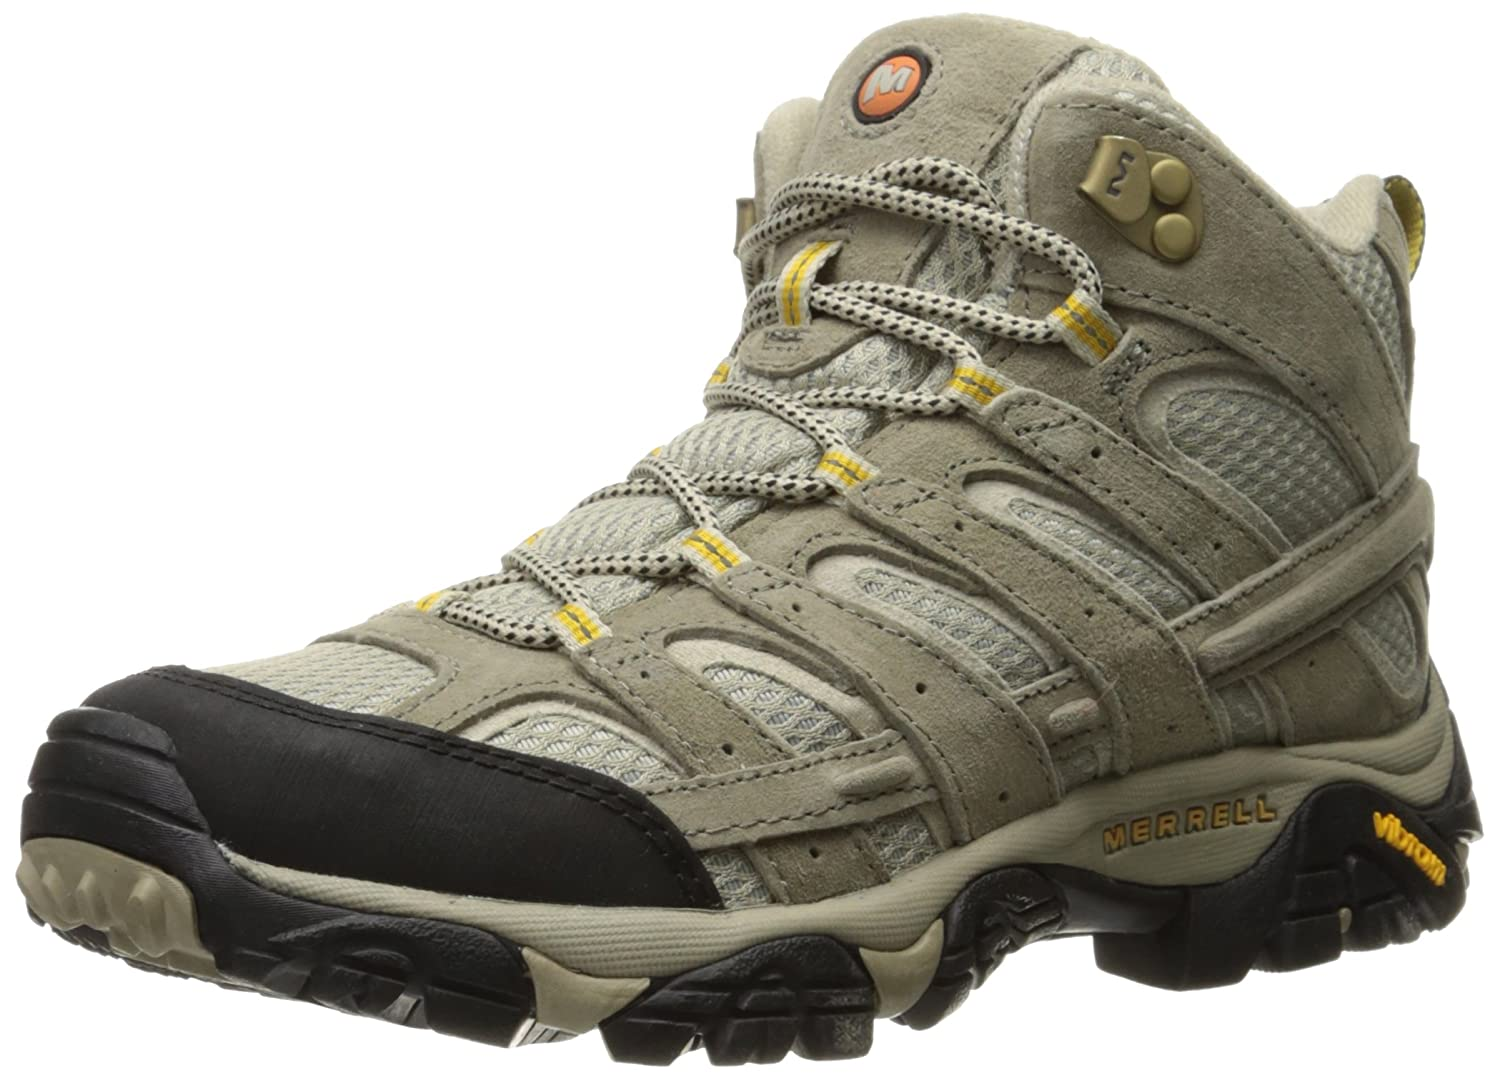 Merrell Women's Moab 2 Vent Mid Hiking Boot B01HFN01TY 8 B(M) US|Taupe